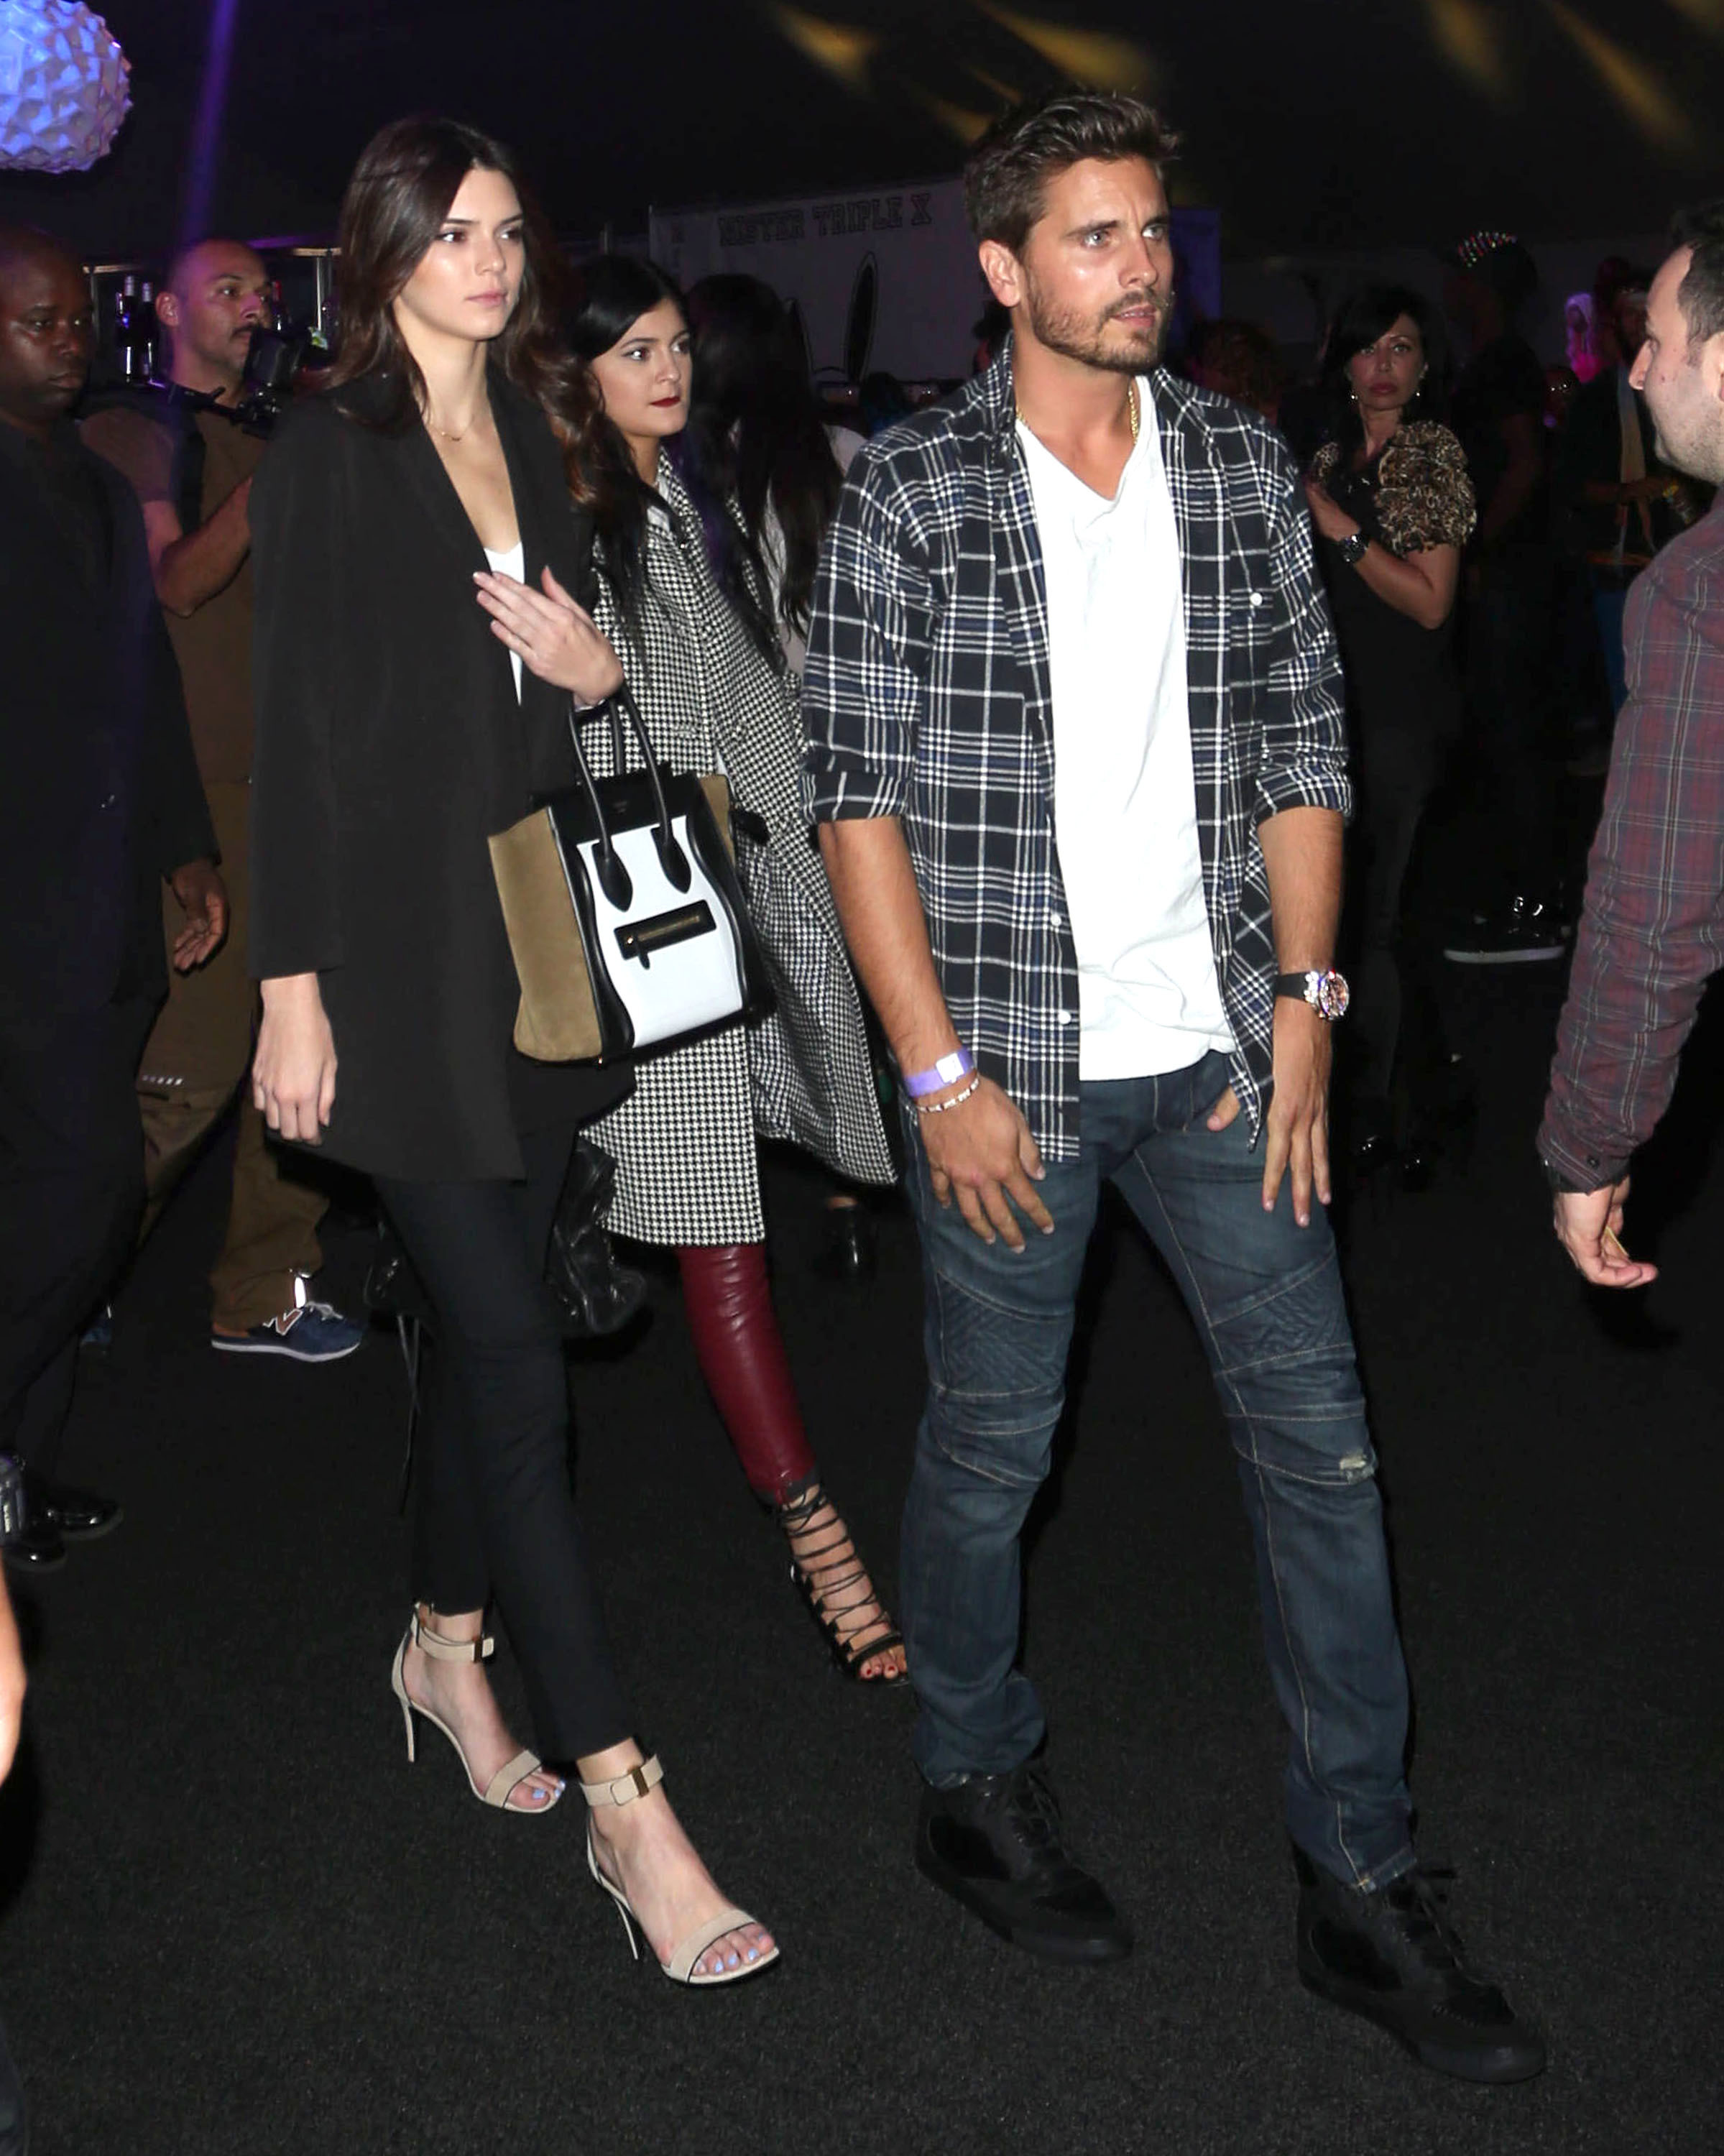 Kylie Jenner, Kendall Jenner and Scott Disick